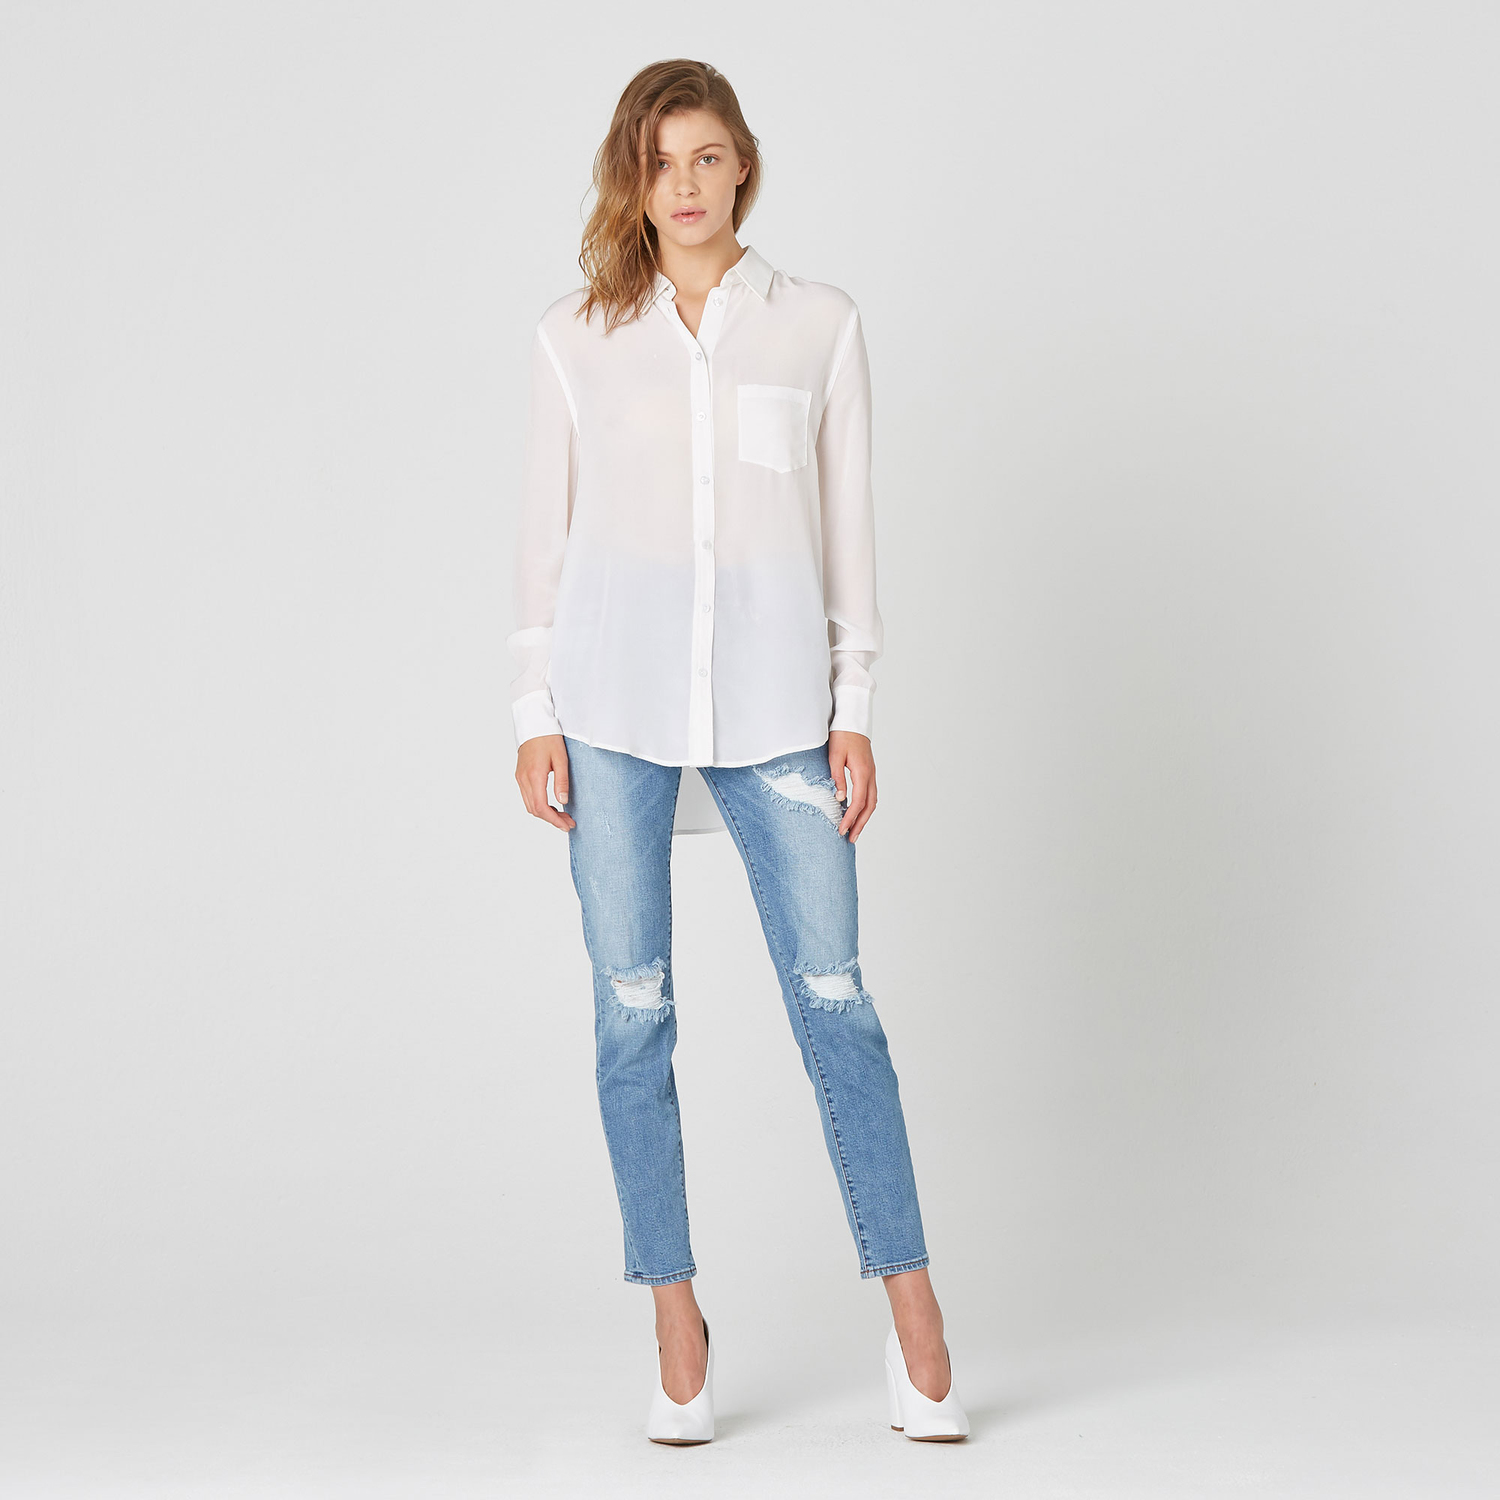 70cbe77290940 Ladies Long White Silk Shirt – EDGE Engineering and Consulting Limited